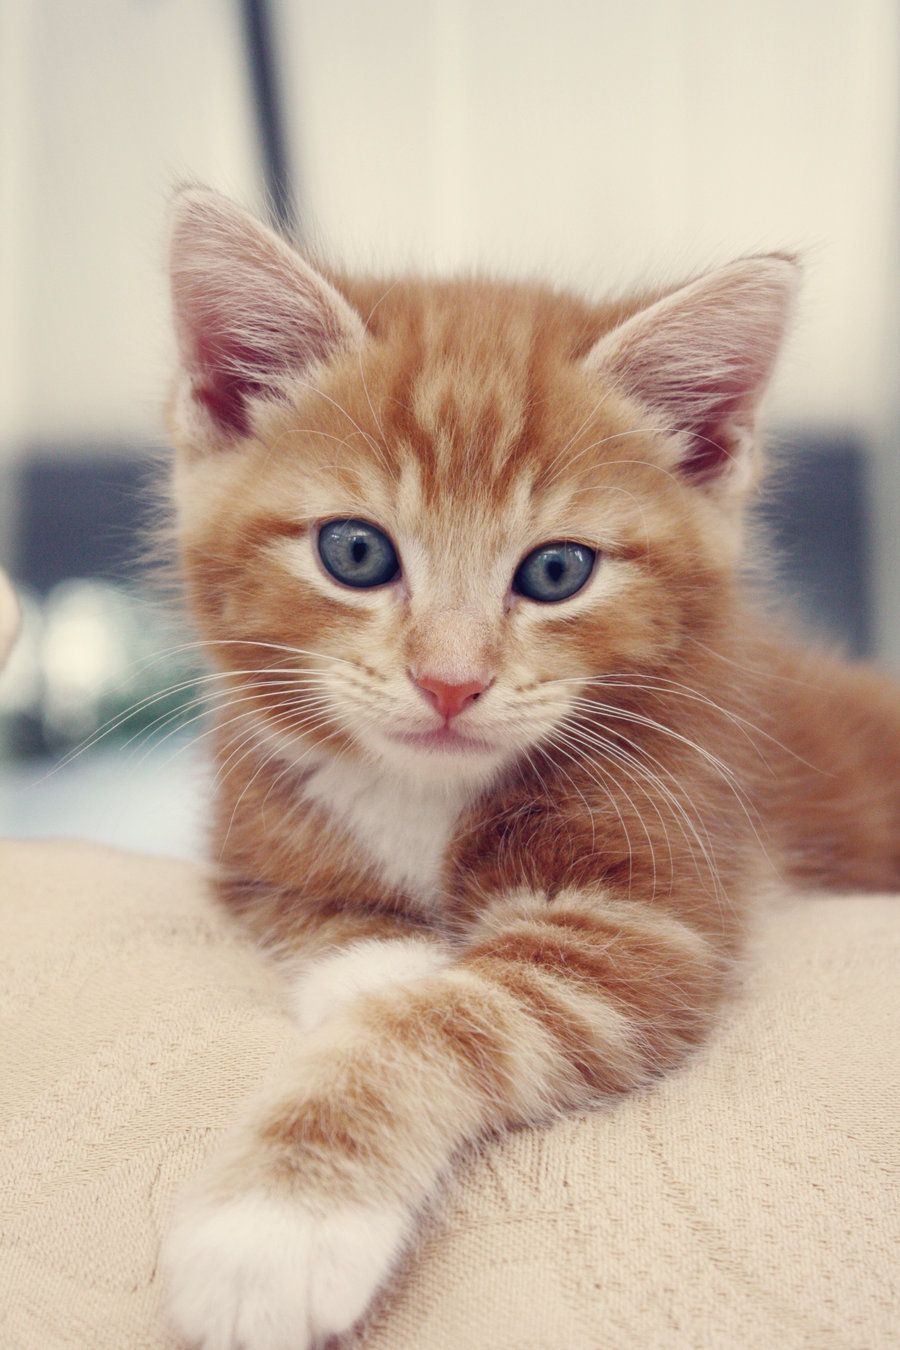 mr ginger tom. by ~phycotic-hypnotic on deviantART